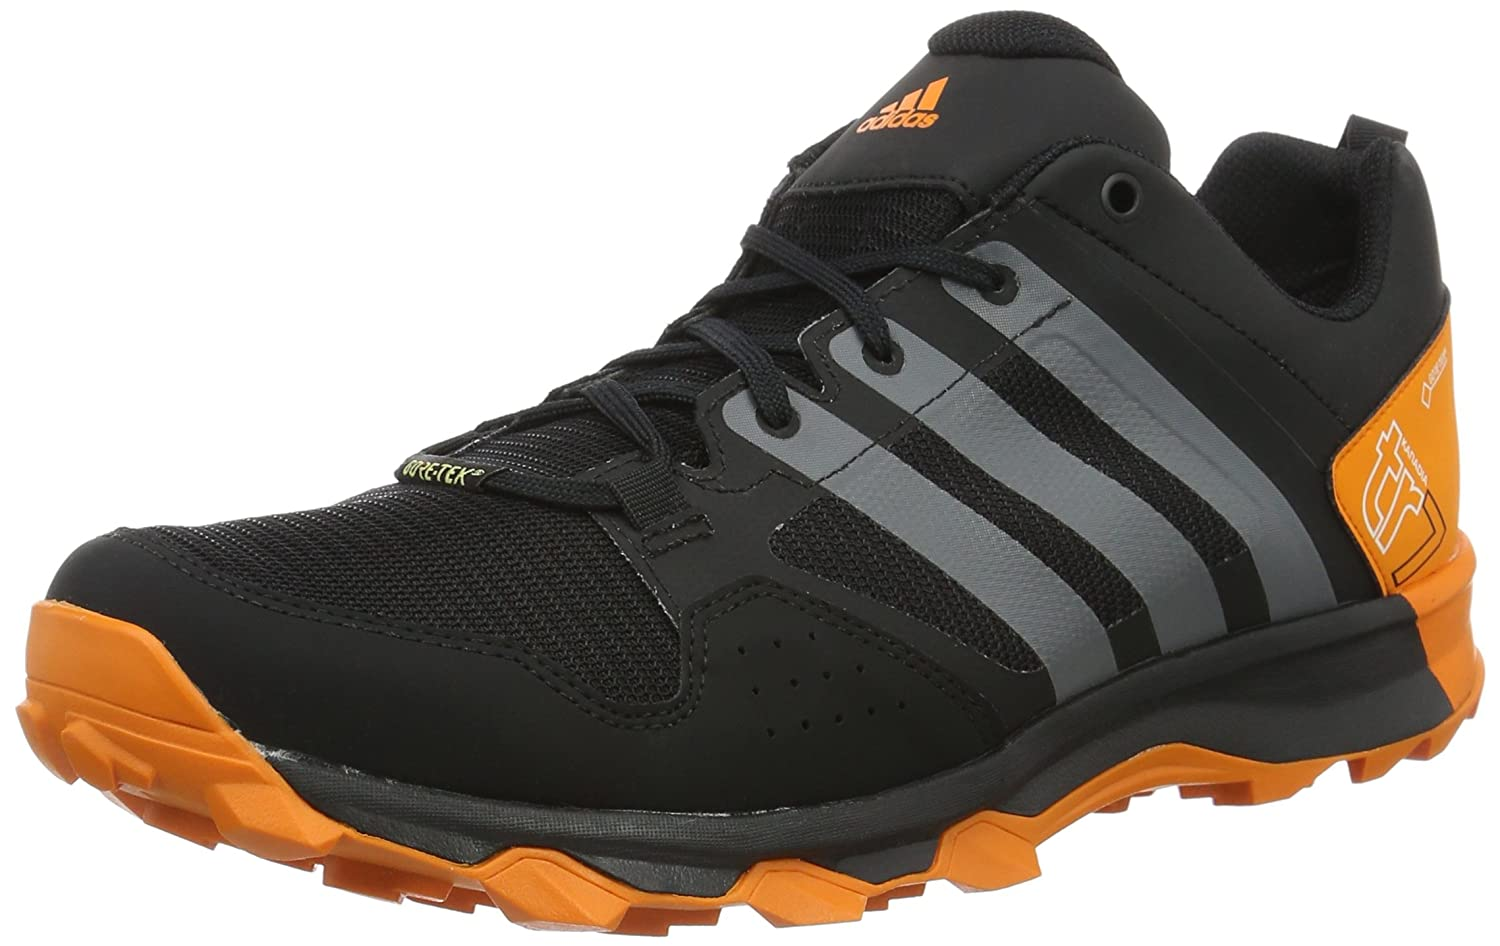 Adidas Kanadia 7 TR GTX Trail Running Shoes - AW16